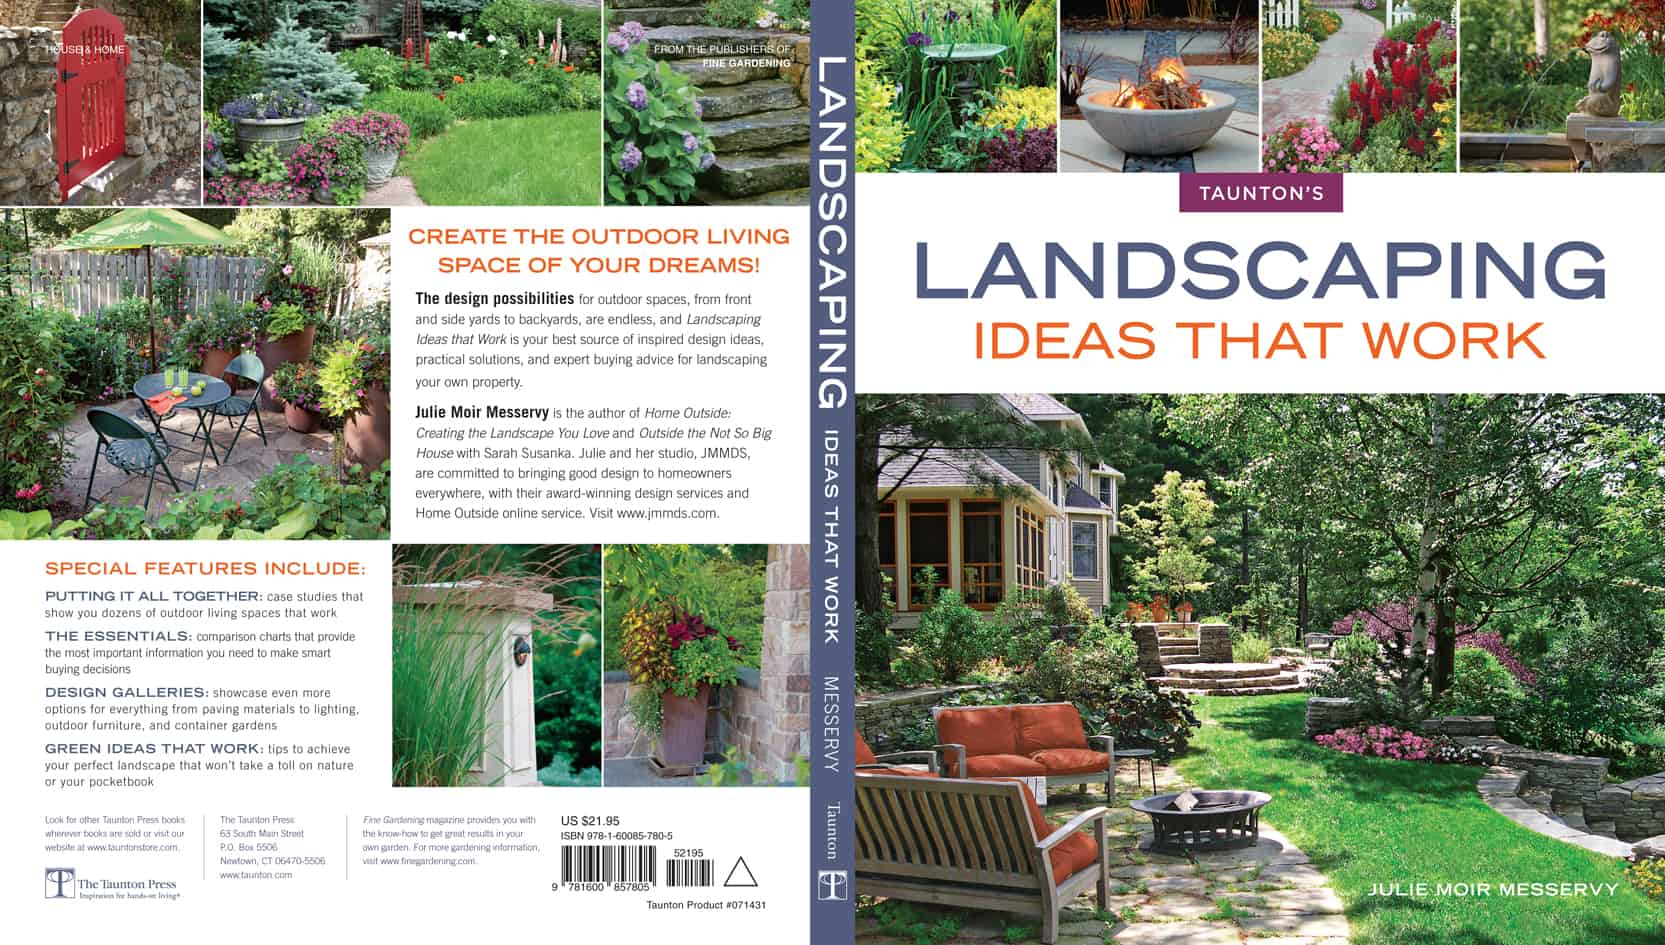 Landscaping ideas that work by julie moir messervy : Julie moir messervy design studio landscaping ideas that work